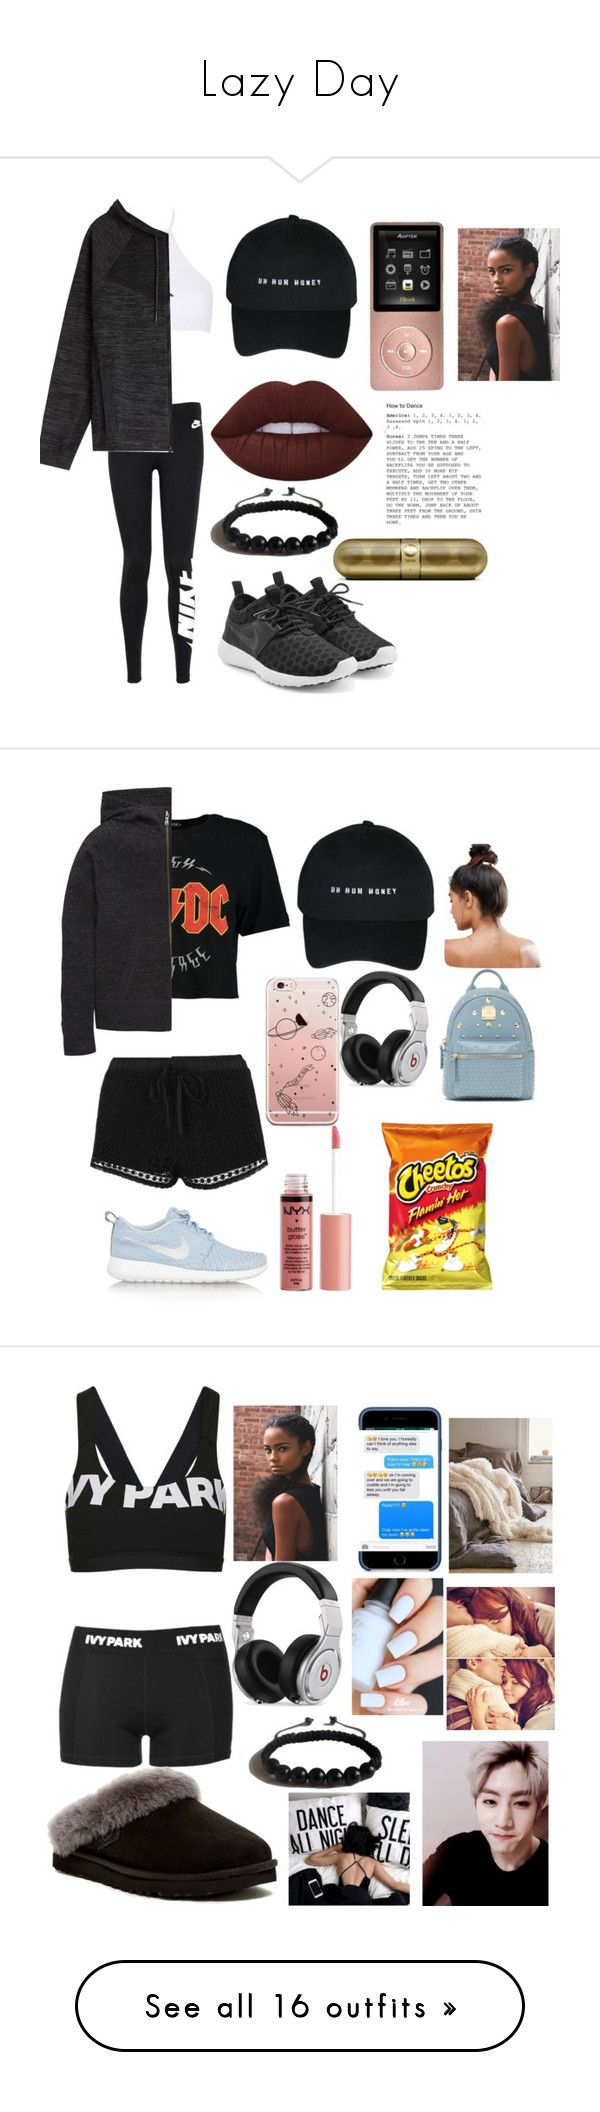 """Lazy Day"" by yourfashionbabe ❤ liked on Polyvore featuring Calvin Klein, NIKE, Shamballa Jewels, Boohoo, Topshop, Beats by Dr. Dre, Kitsch, Bebe, Charlotte Russe and UGG"